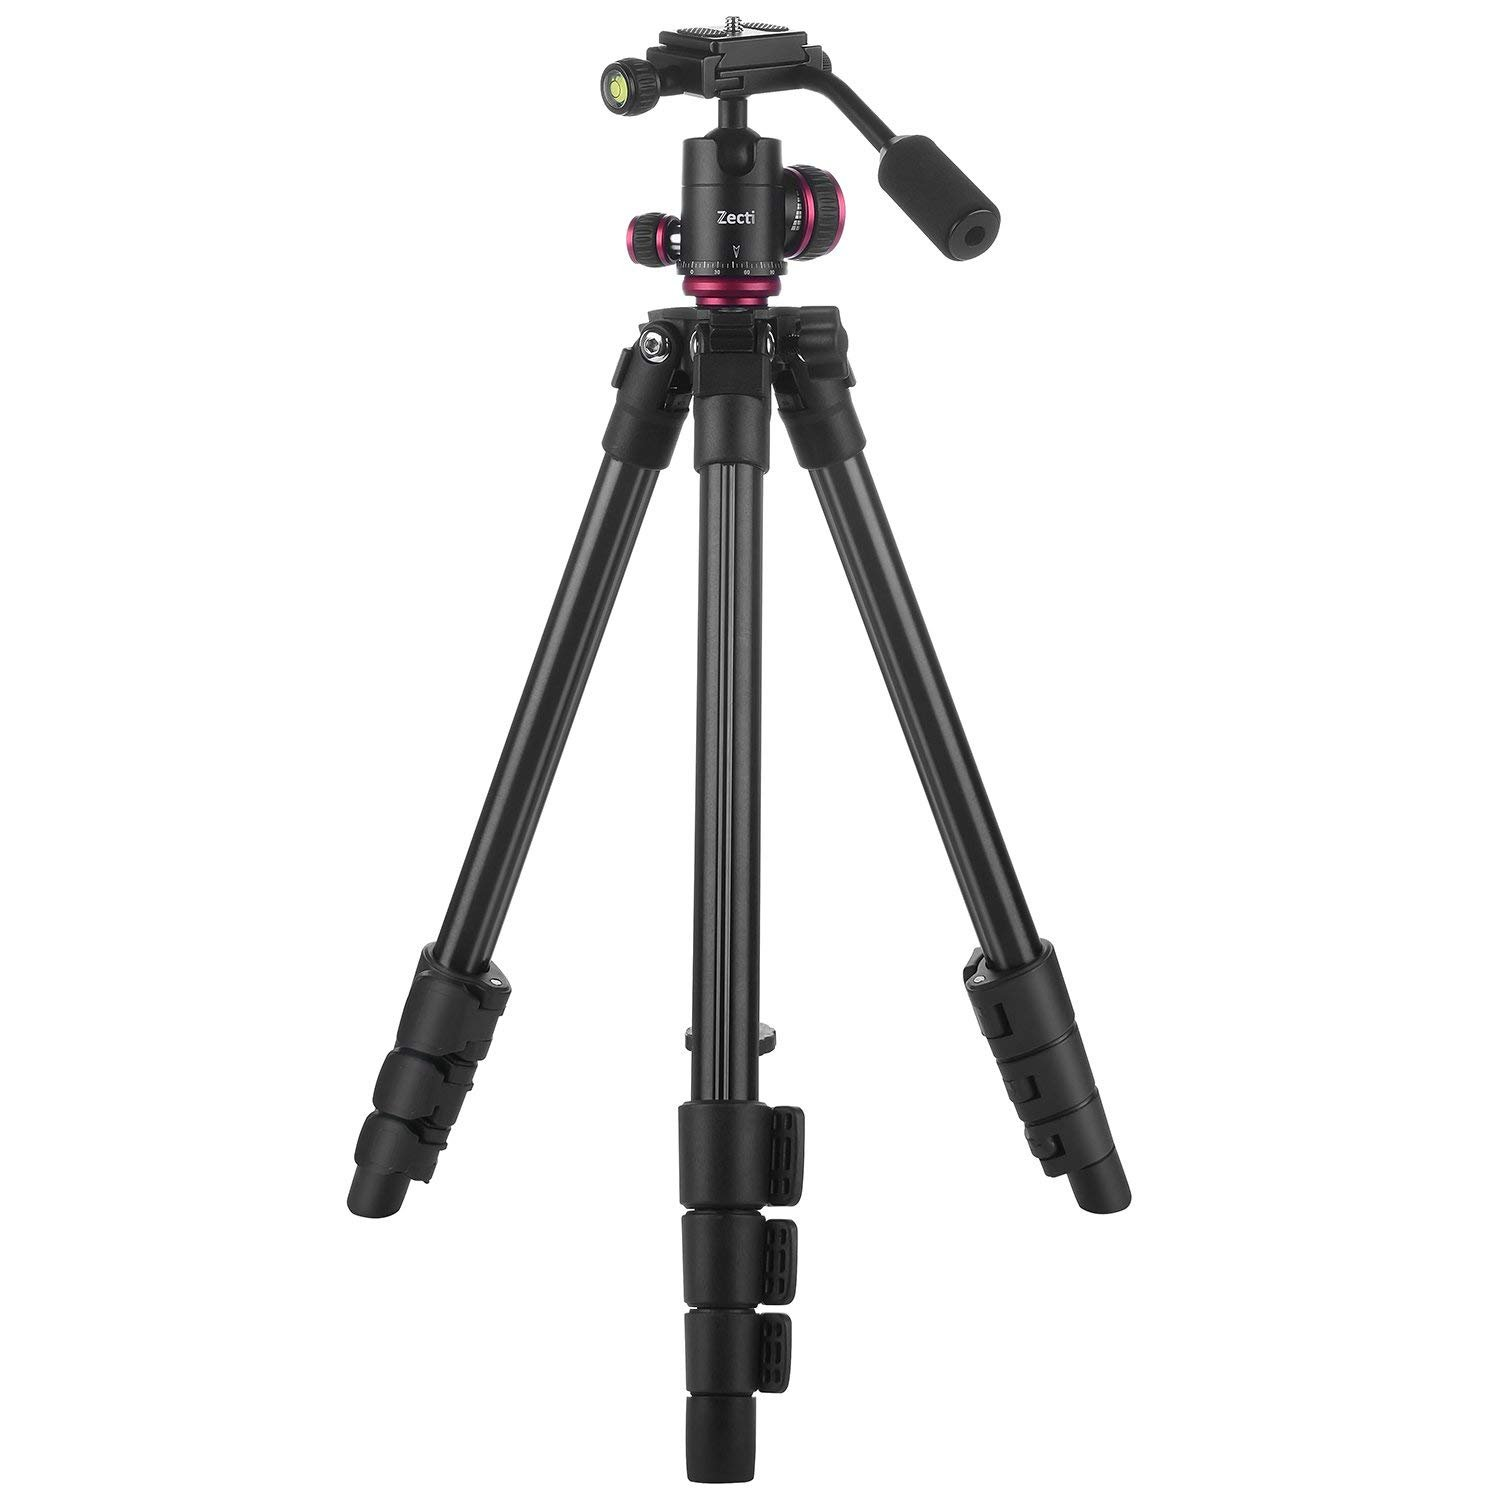 Zecti Lightweight Travel Tripod Height Adjustable 40 to 126cm Camera Tripod with Carrying Bag and Ball Head with Anti-Slip Handle and 2 gradienter (Load:3kg)